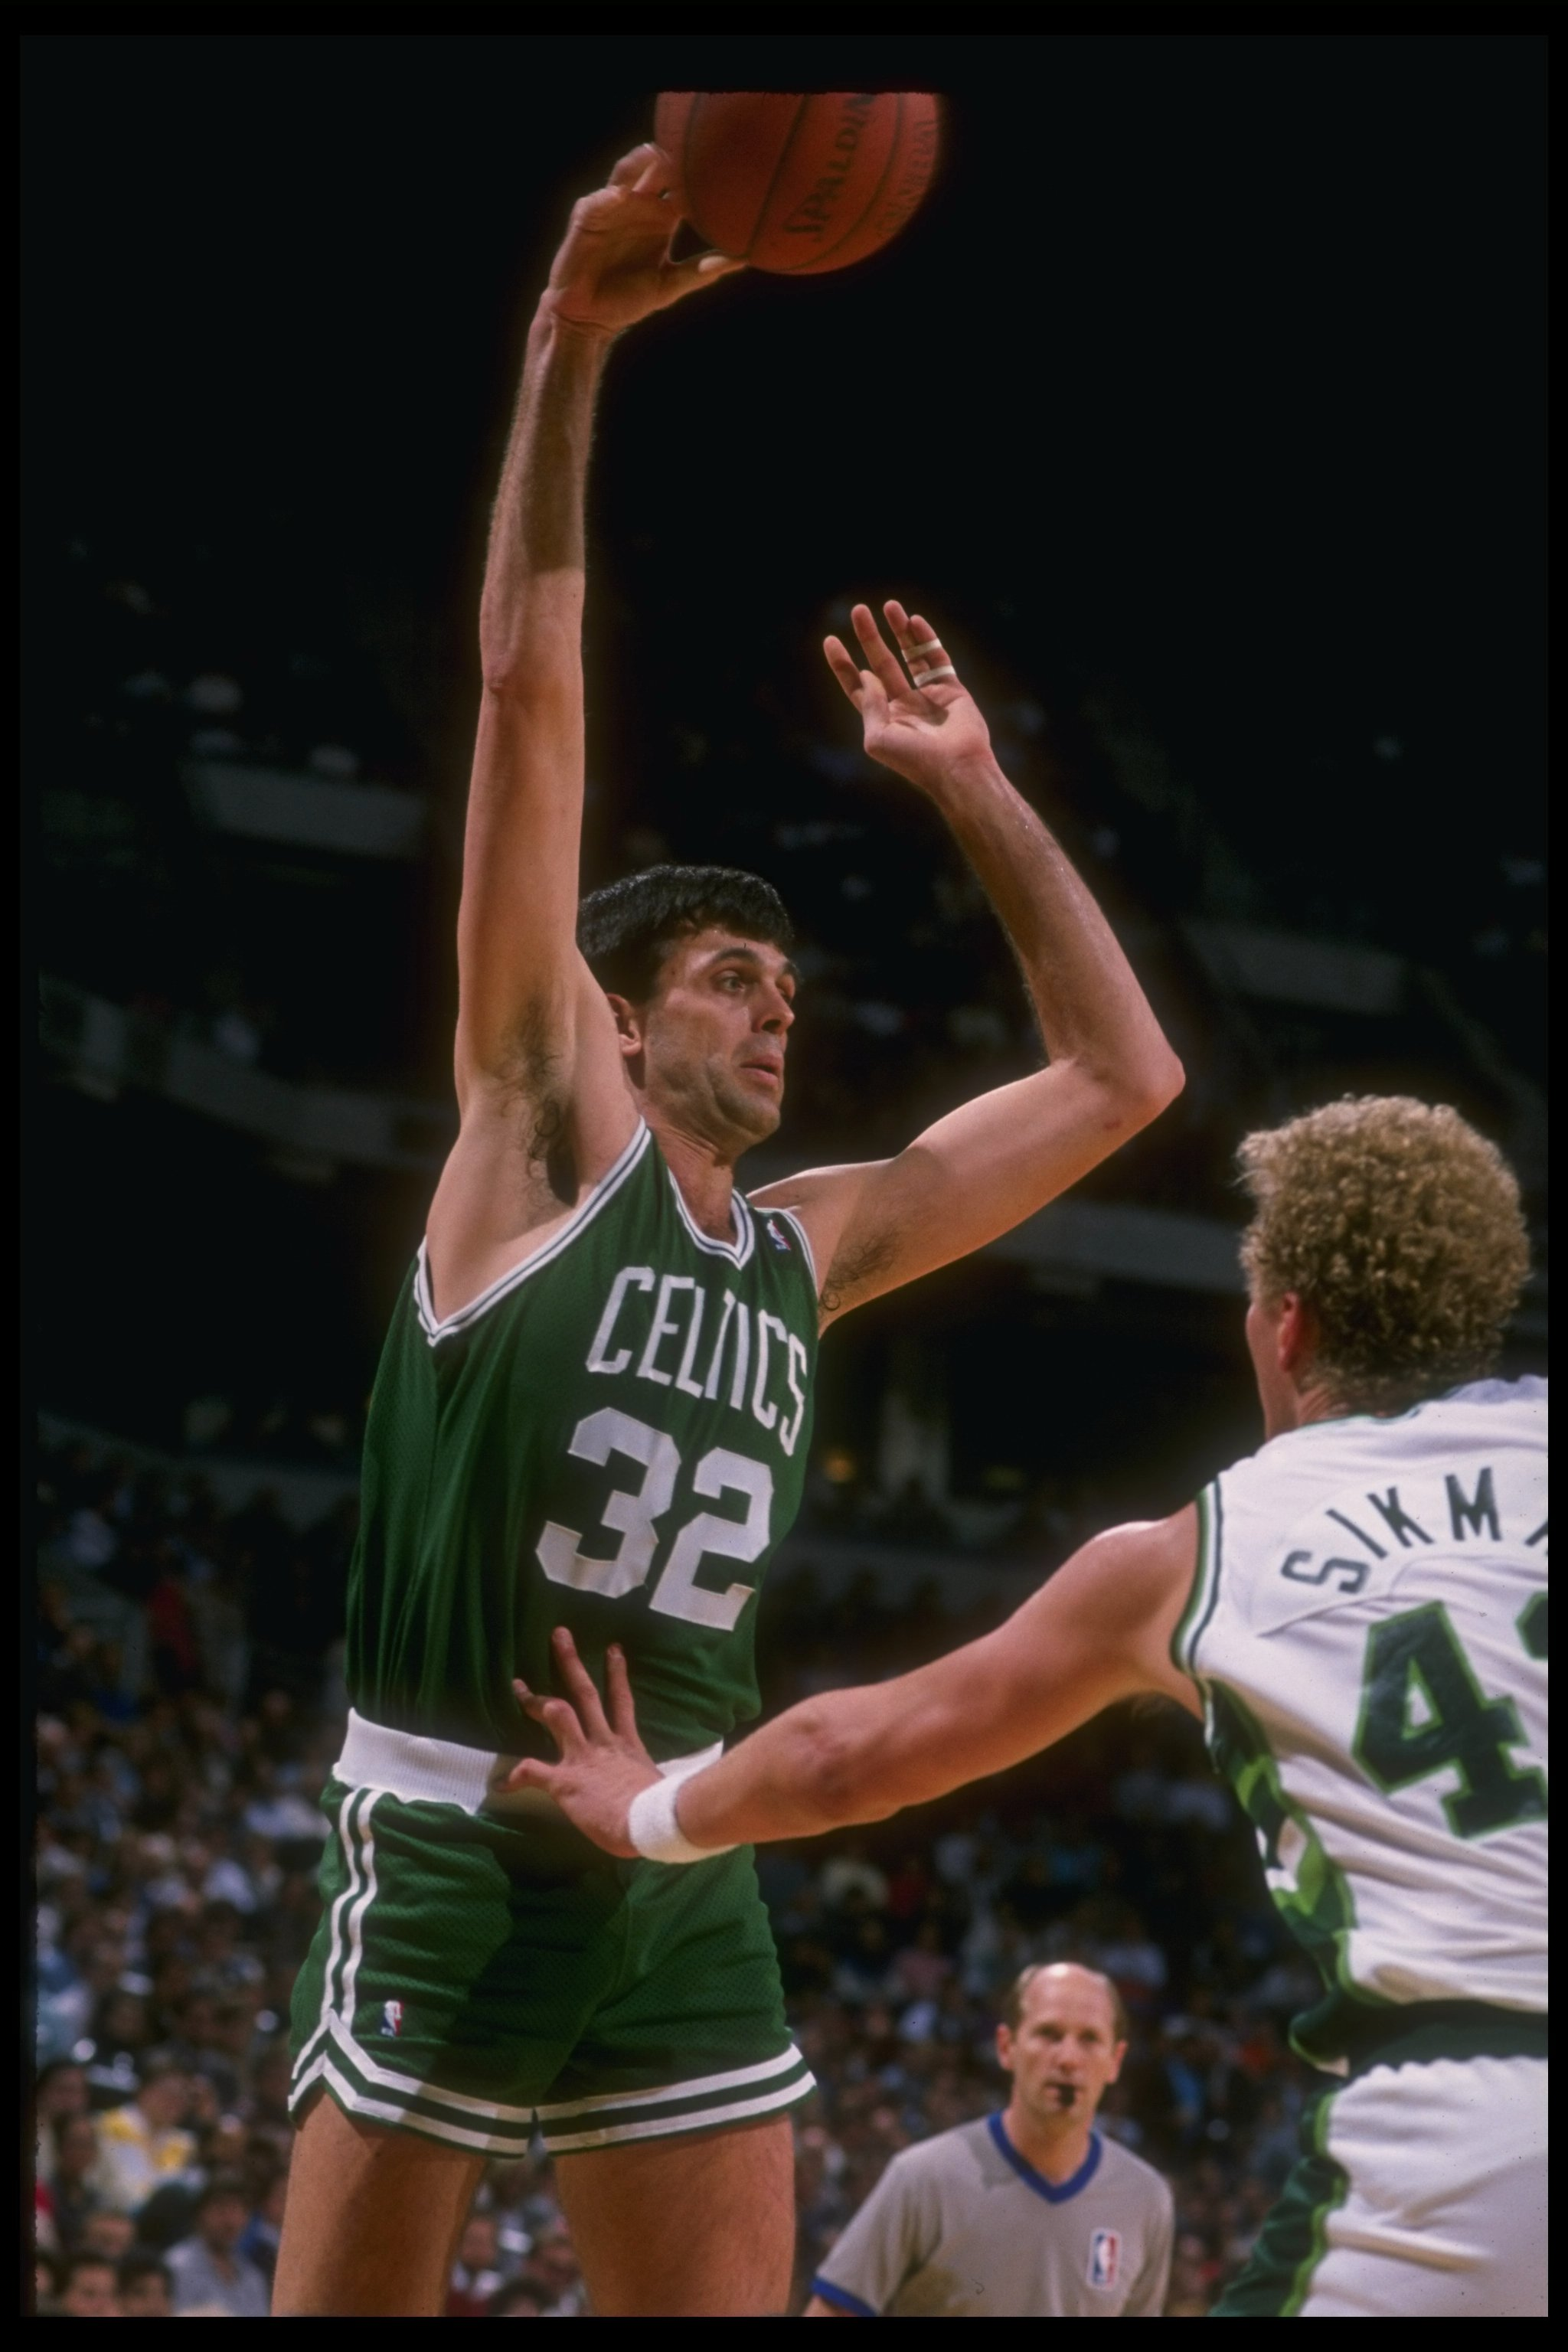 Forward Kevin McHale of the Boston Celtics shoots the ball during a game versus the Milwaukee Bucks at the Bradley Center in Milwaukee, Wisconsin.